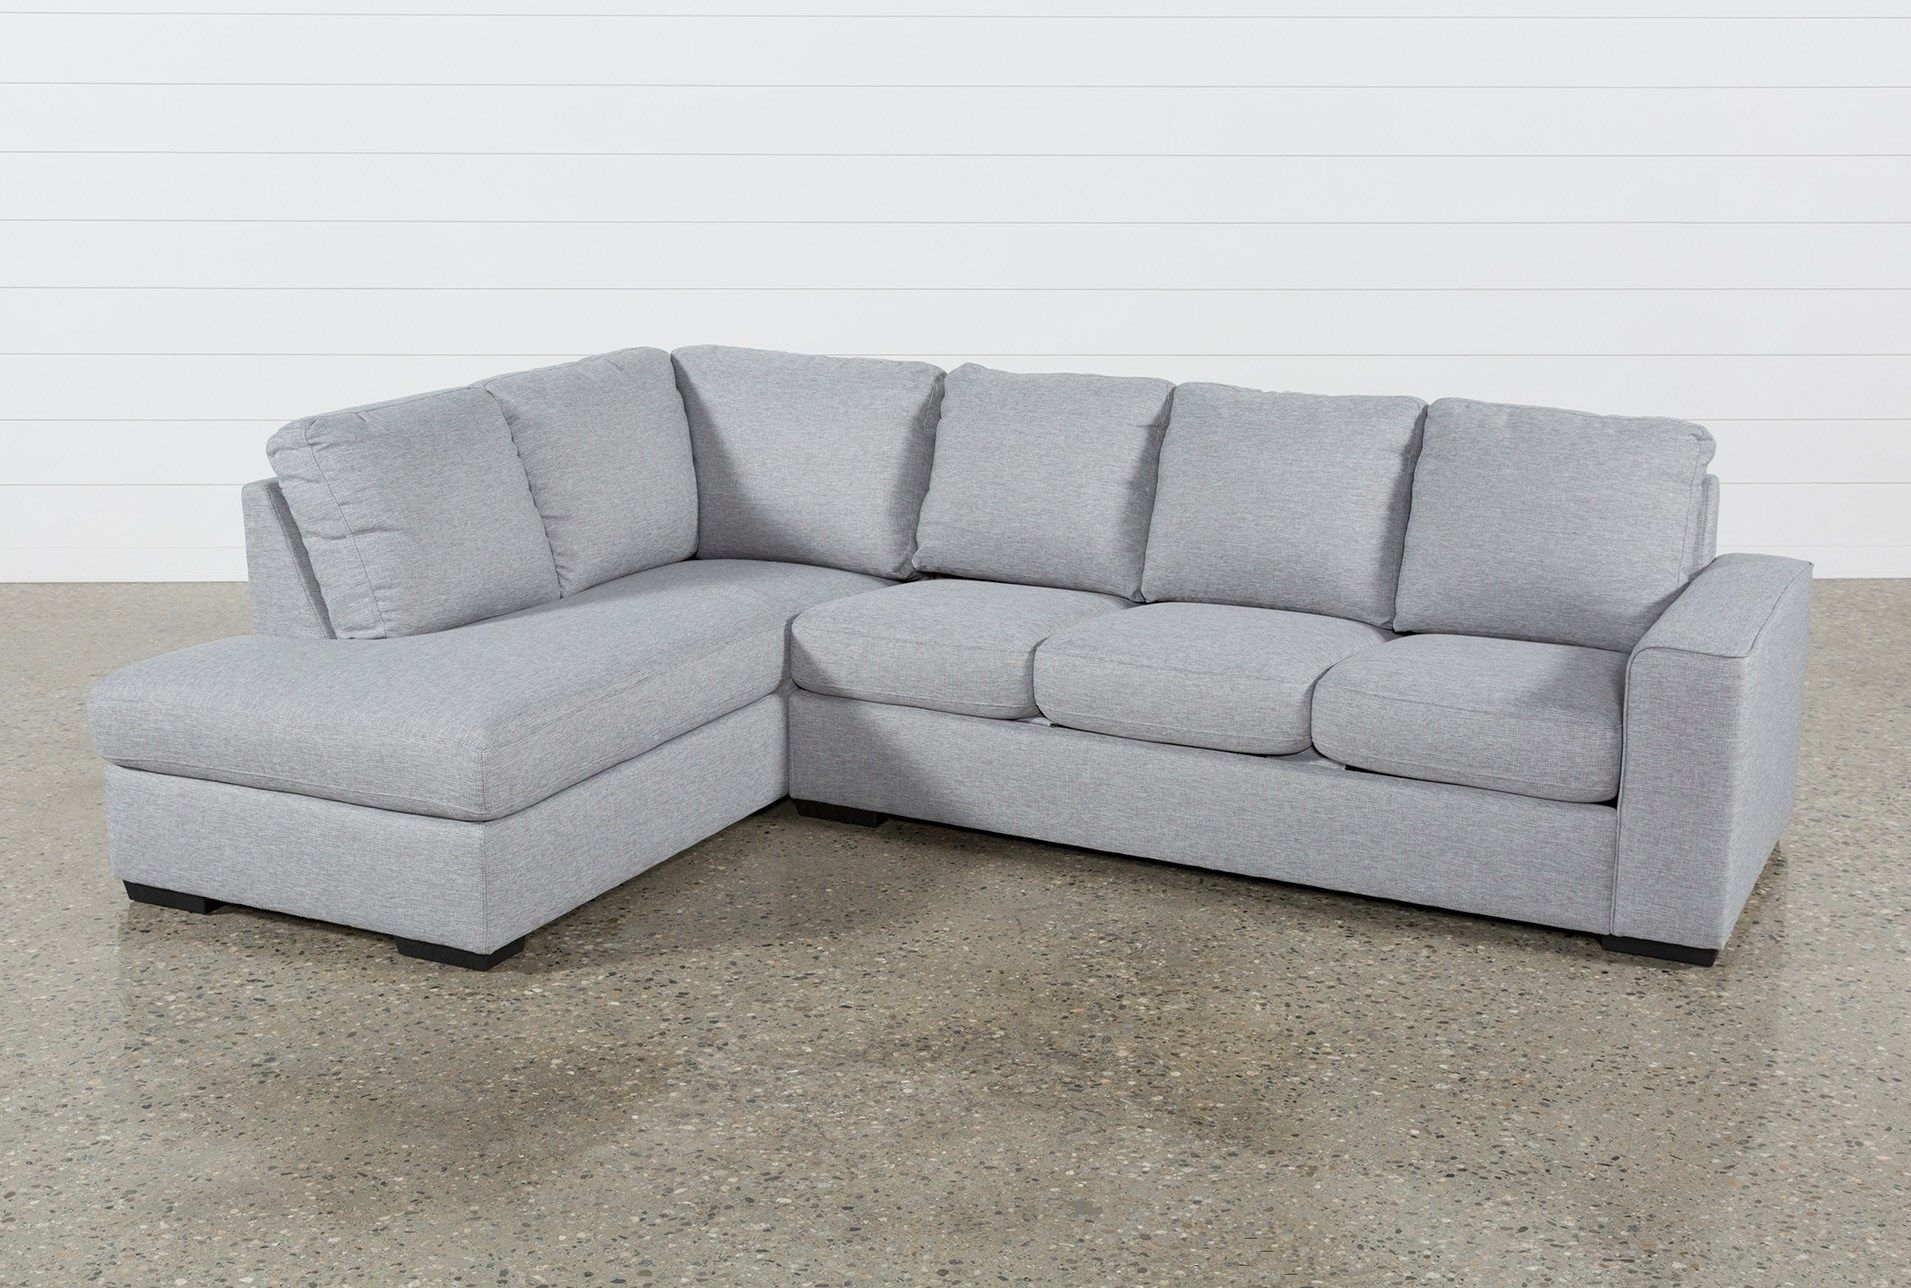 Lucy Grey 2 Piece Sectional W/laf Chaise | Tx House | Pinterest Pertaining To Lucy Dark Grey 2 Piece Sleeper Sectionals With Laf Chaise (Image 14 of 25)